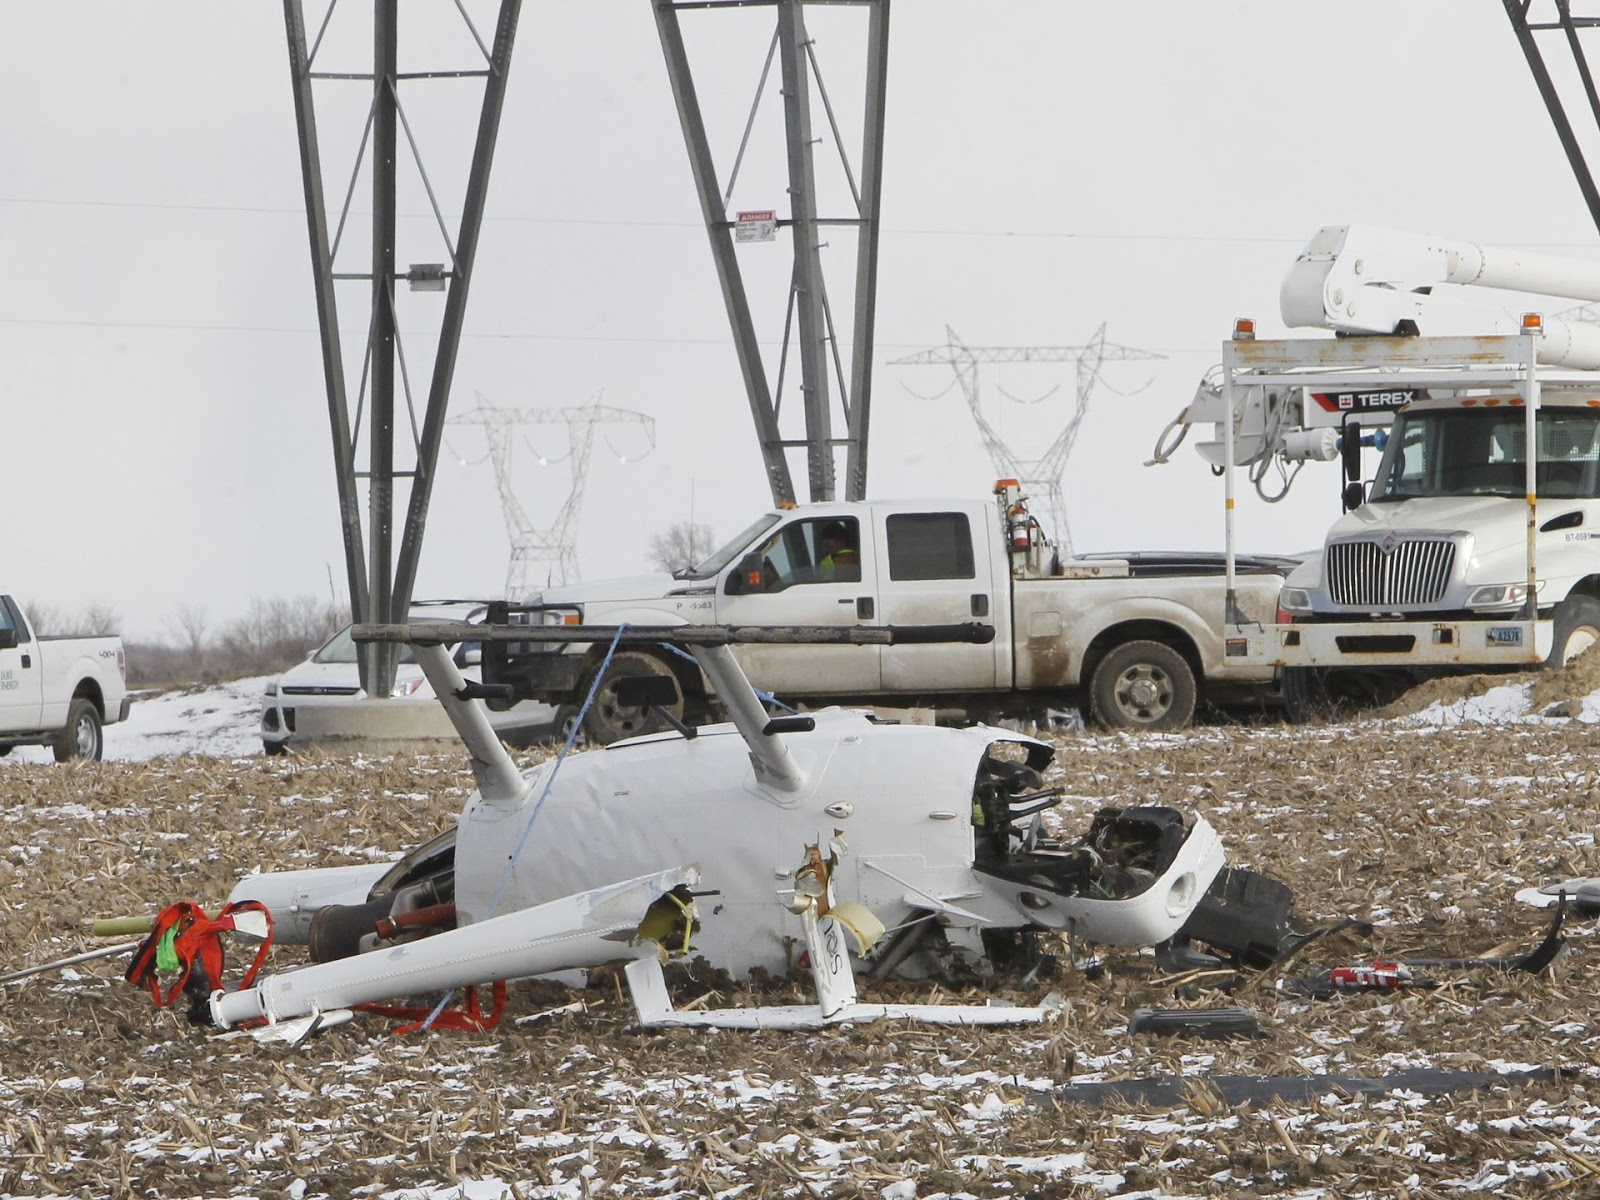 Indiana white county chalmers - White County Ind Wlfi A Helicopter Crash In White County That Killed A Pilot Remains Under Investigation